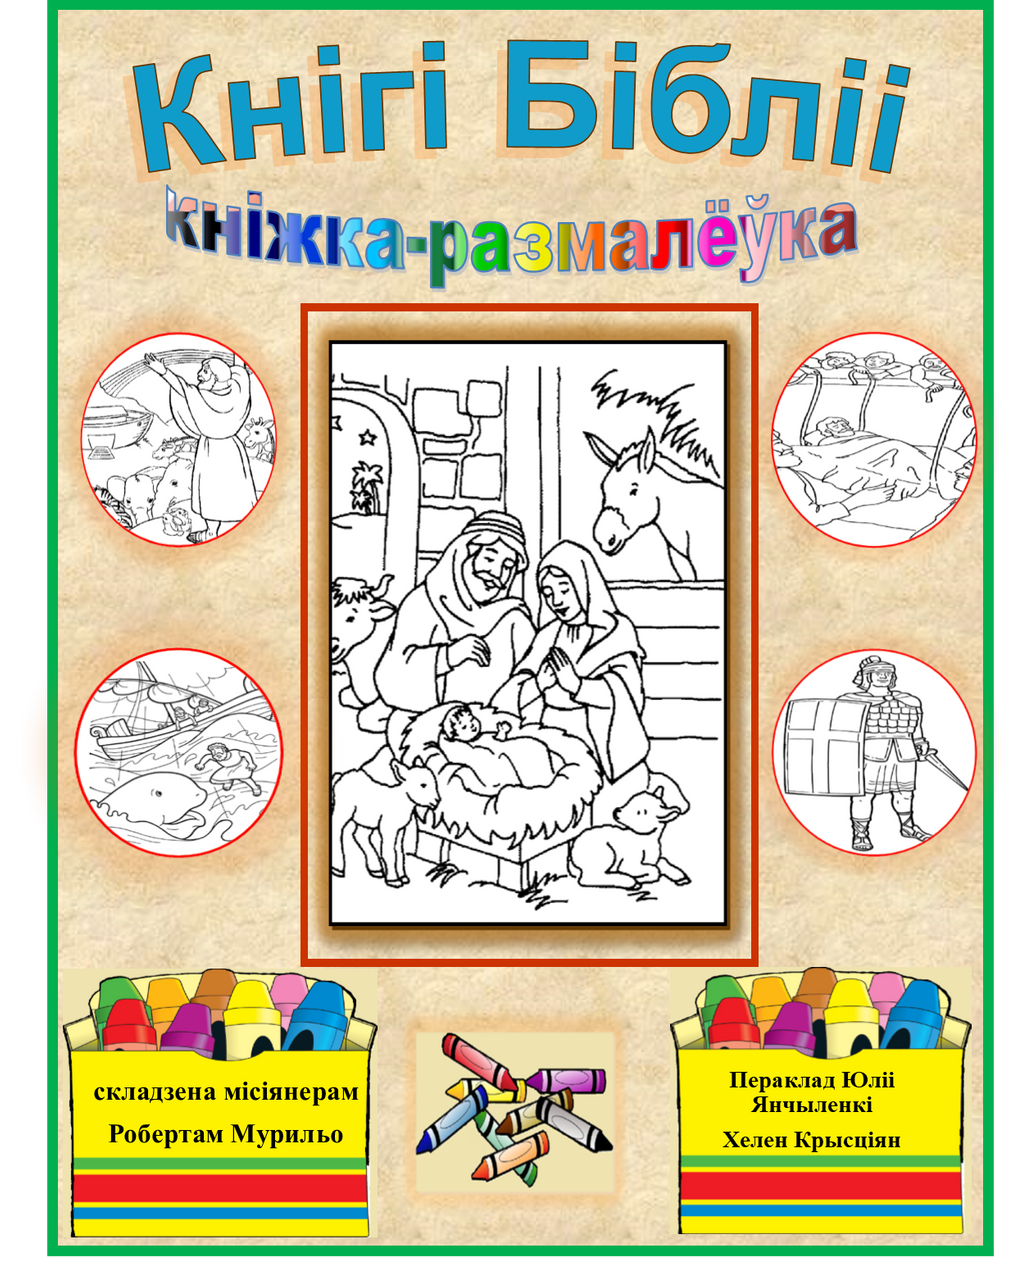 - Books Of The Bible Coloring Book - Belarus - LAMB PUBLICATIONS